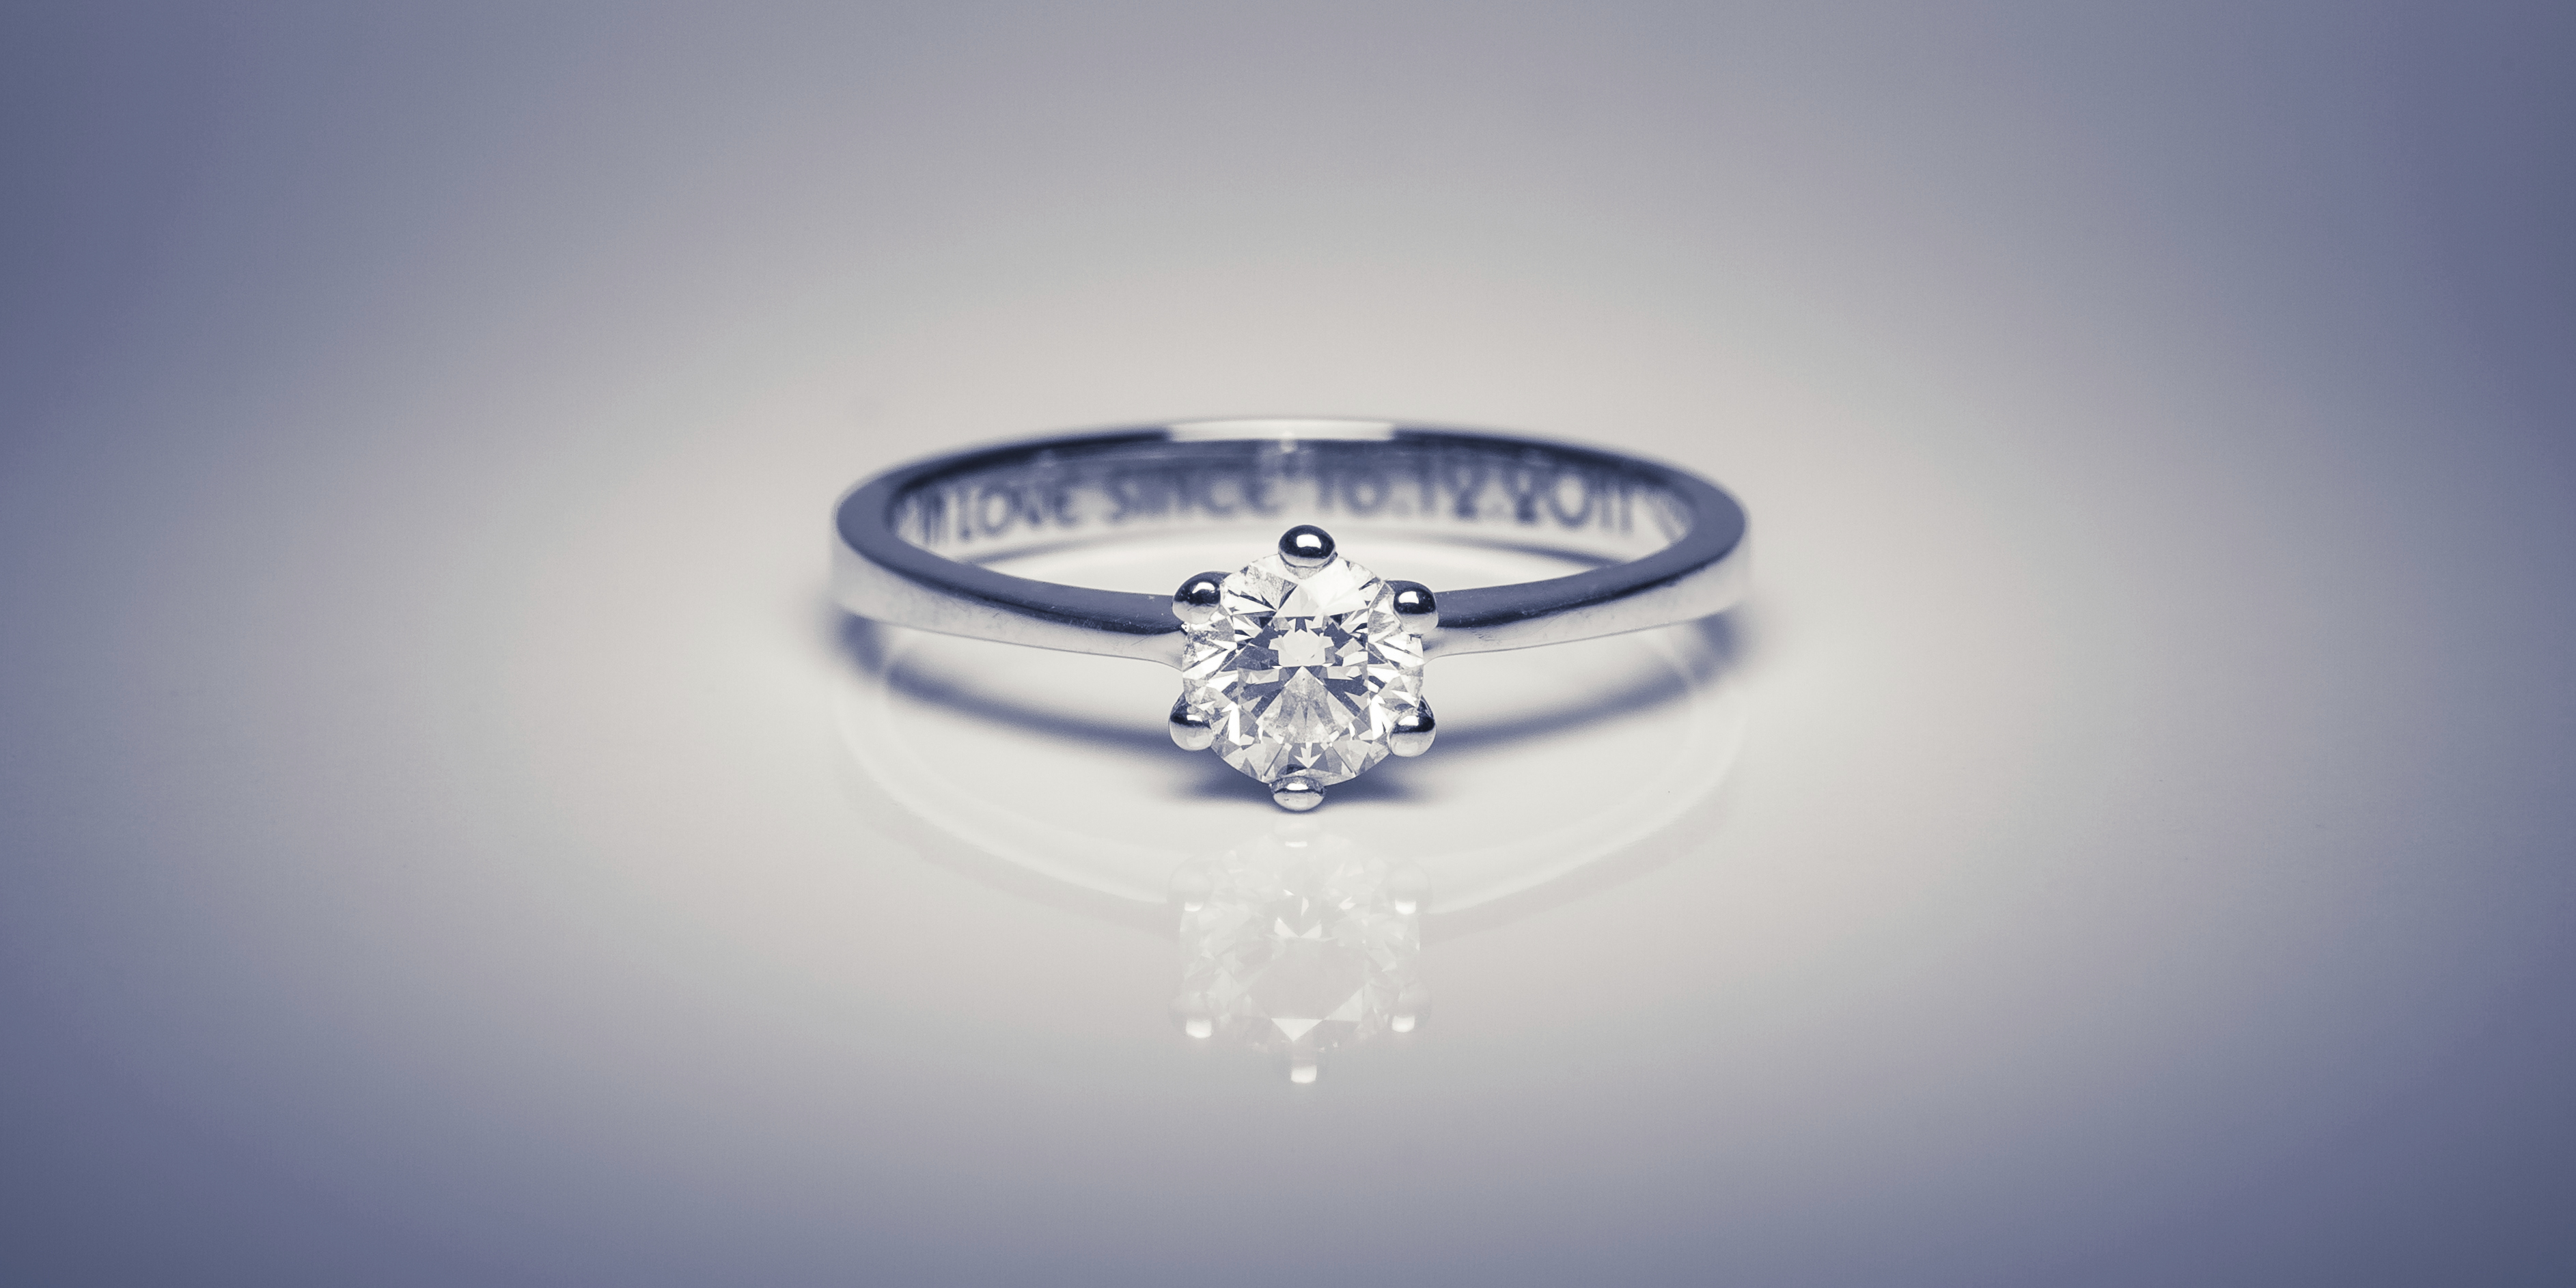 diamond rings engagement engringpackage wedding london button platinum bridal uk